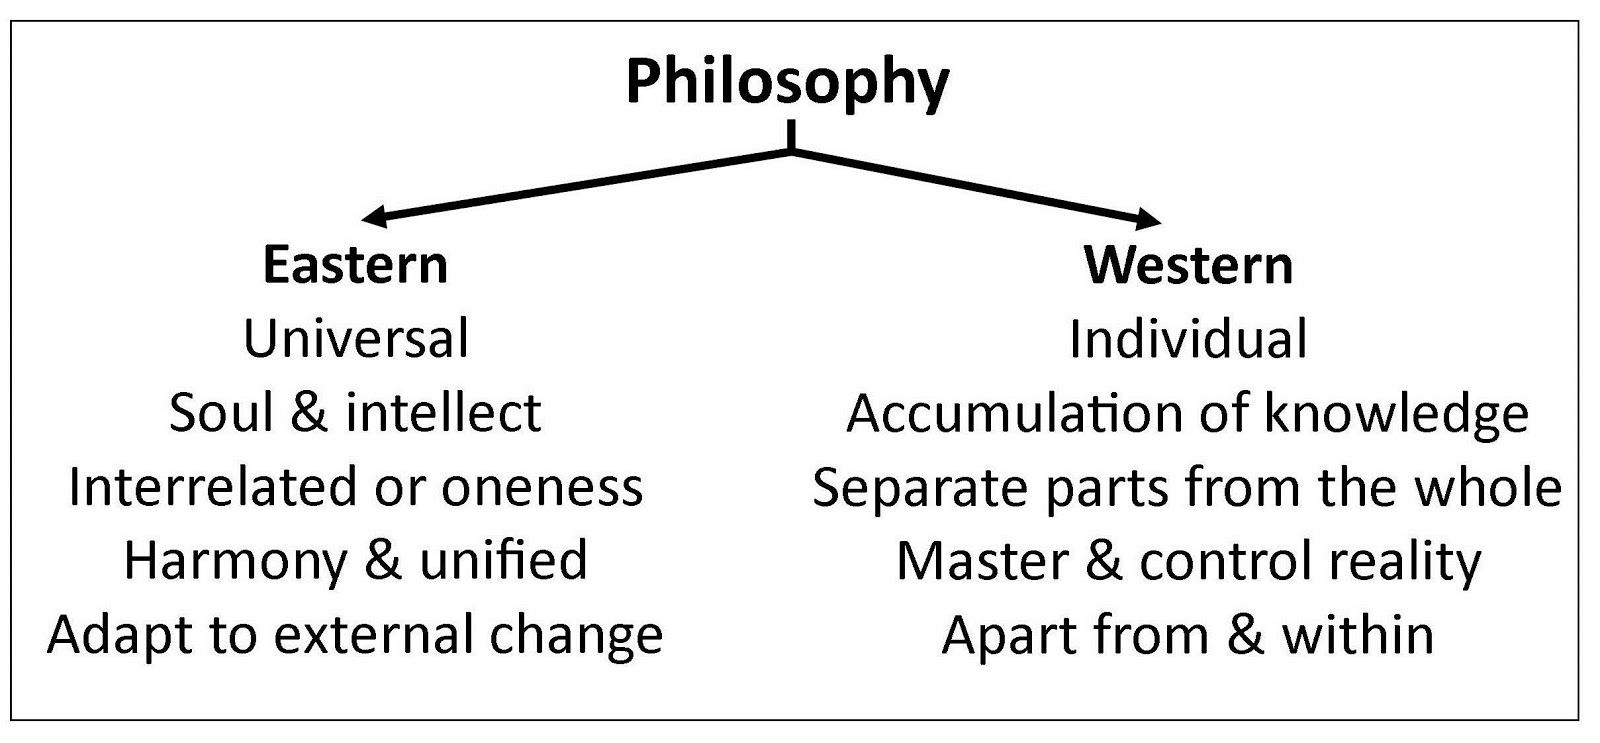 The Differences Between Eastern and Western Philosophy ...